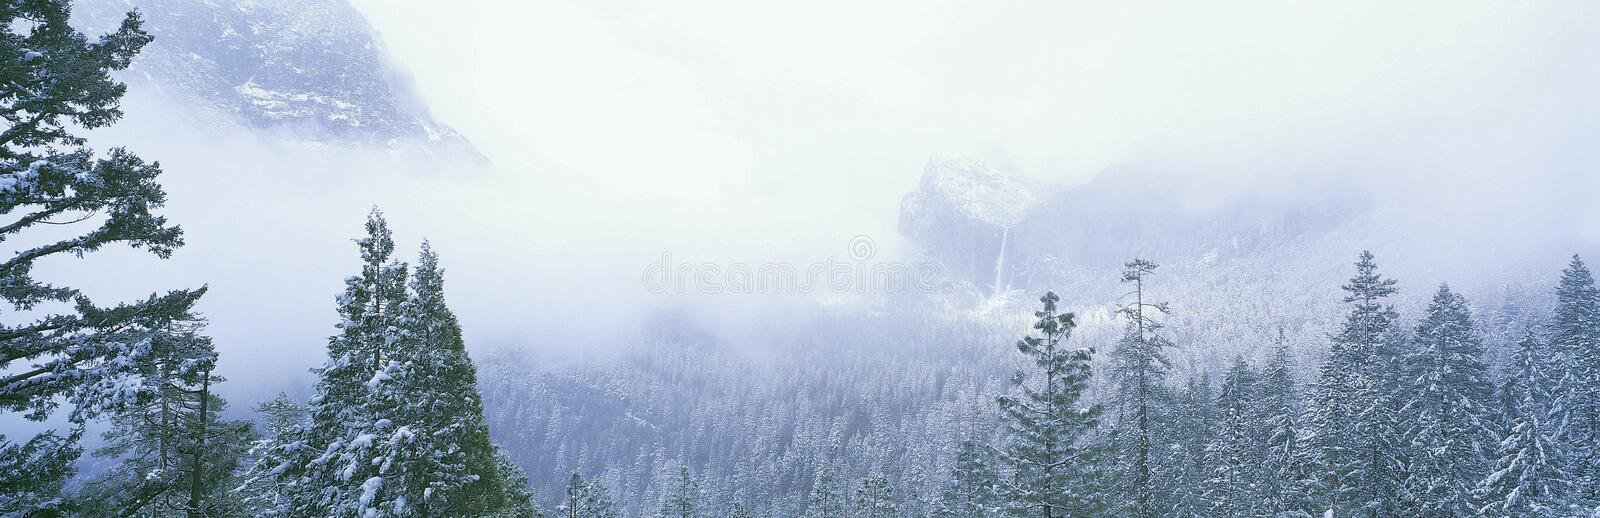 Download Misty mountains stock photo. Image of capped, beauty - 23171088